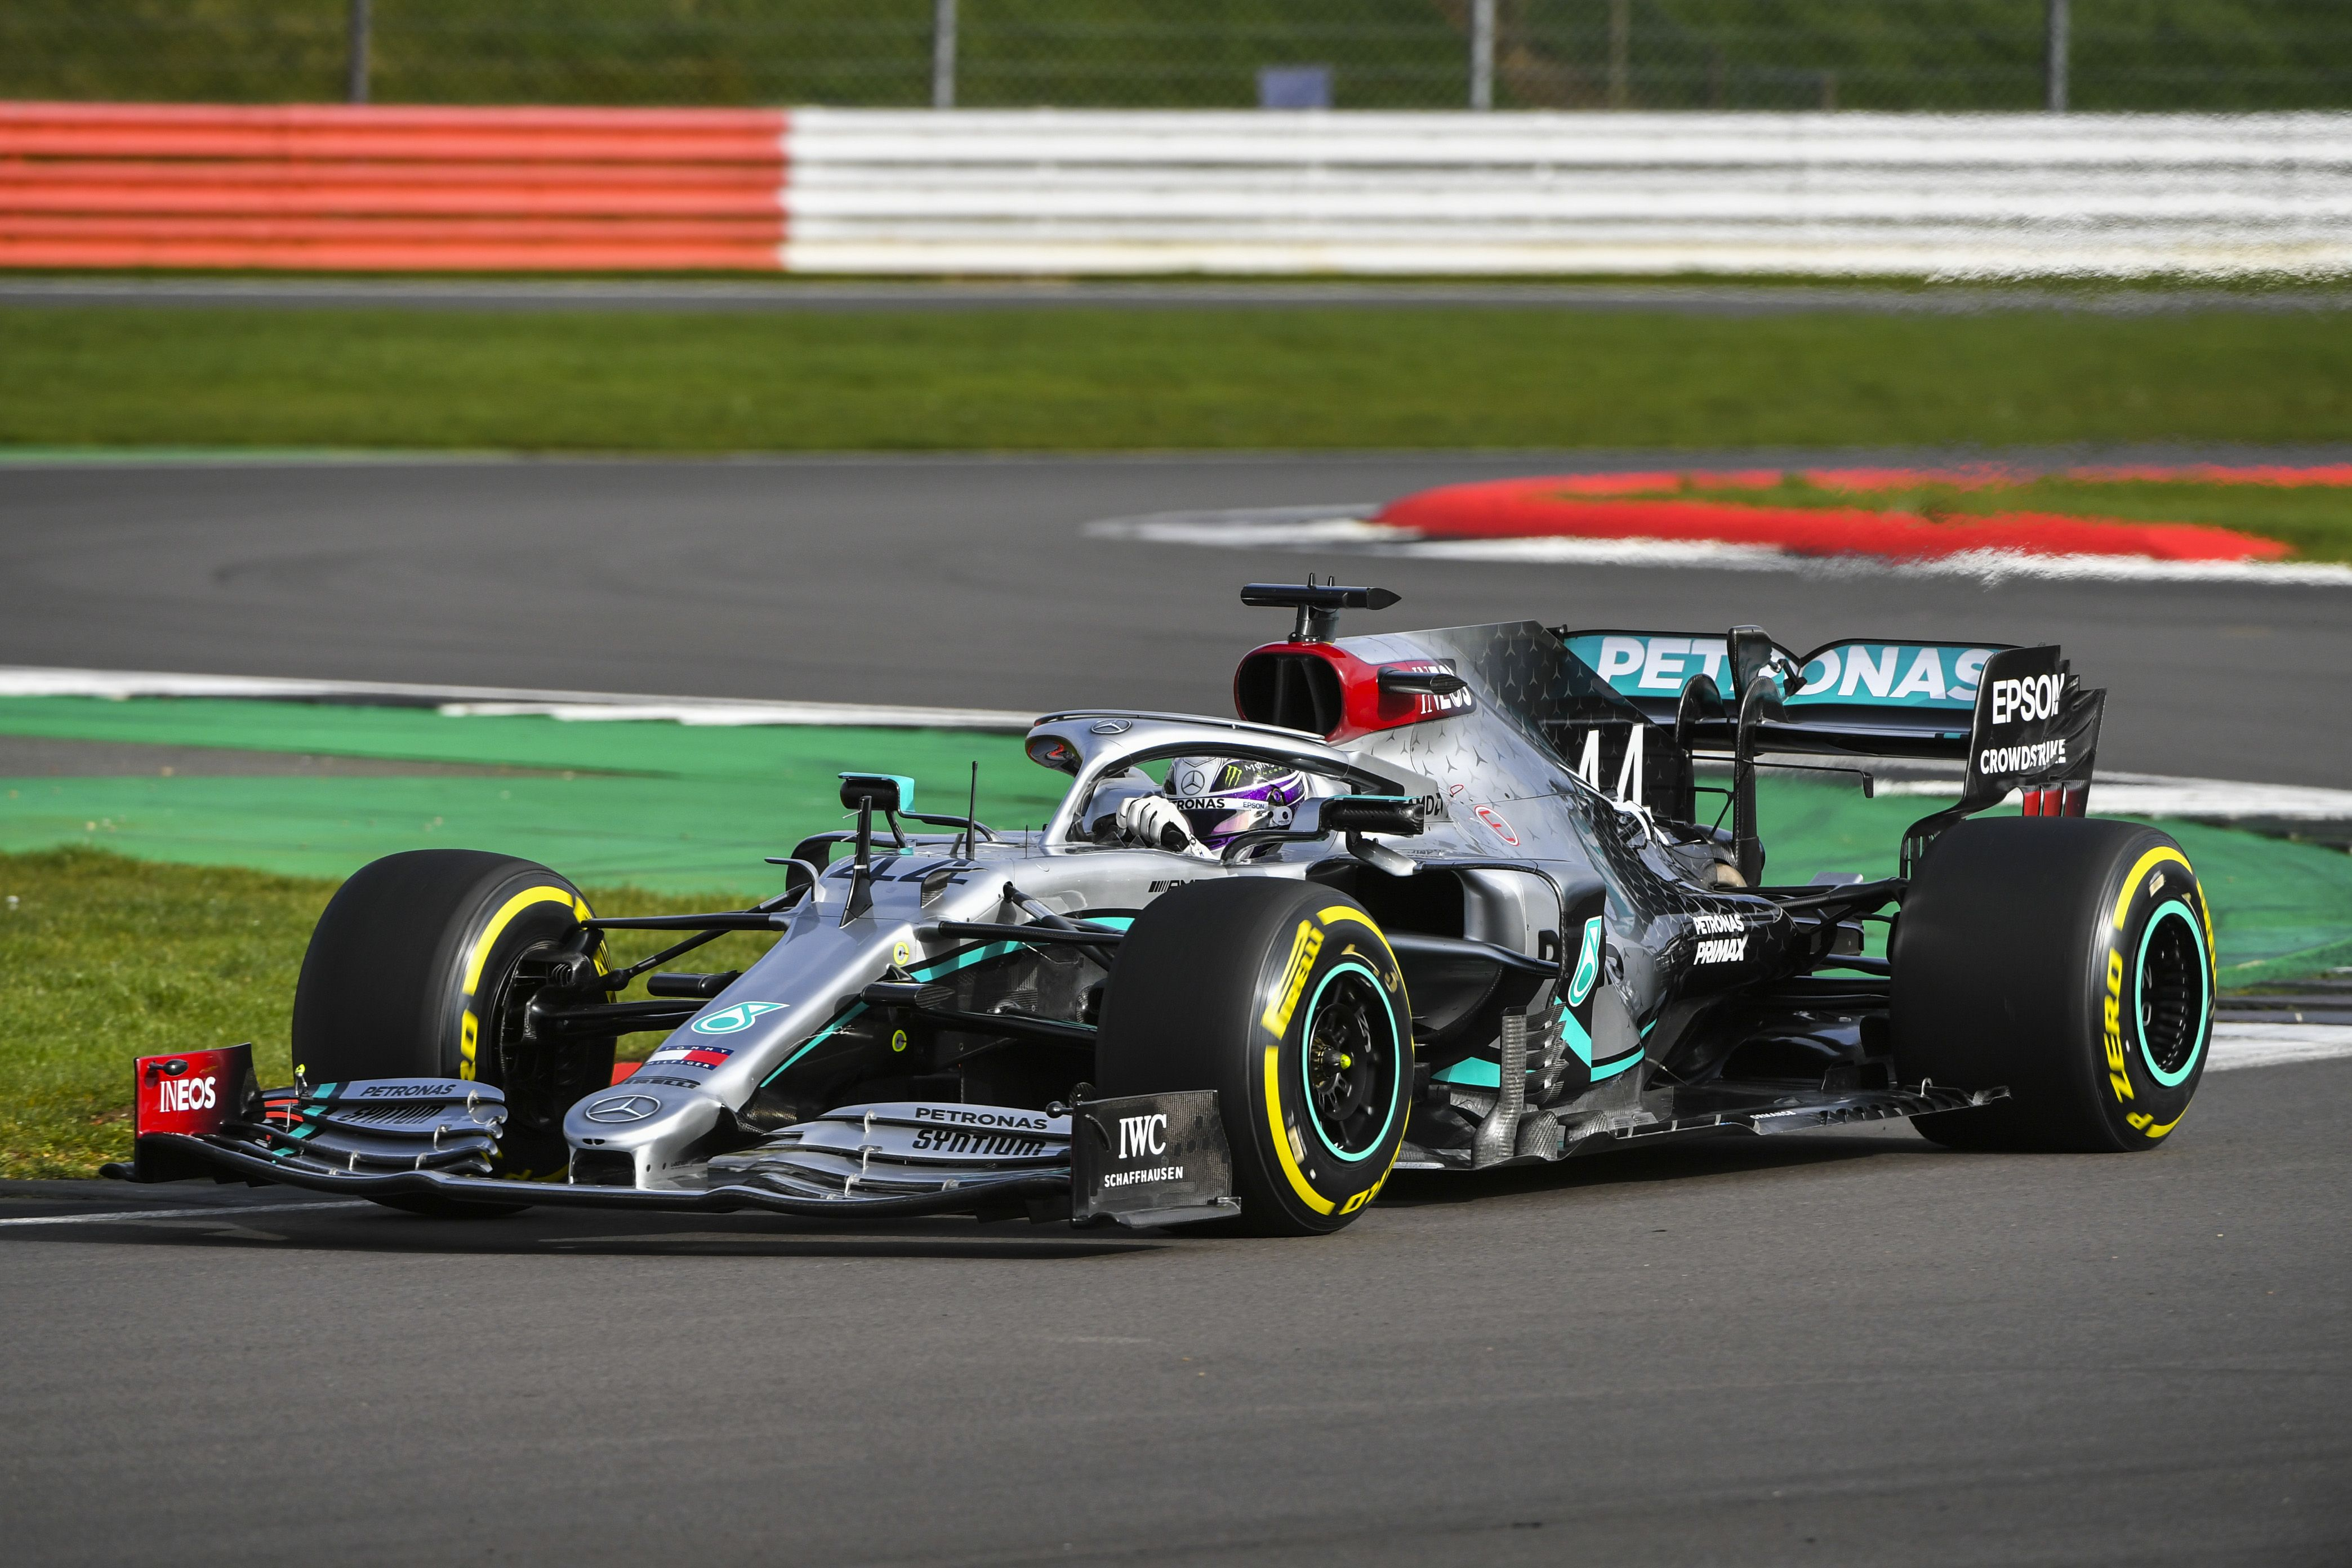 Mercedes-AMG Petronas F1 Reveals The Car That'll Probably Win the 2020 Championship